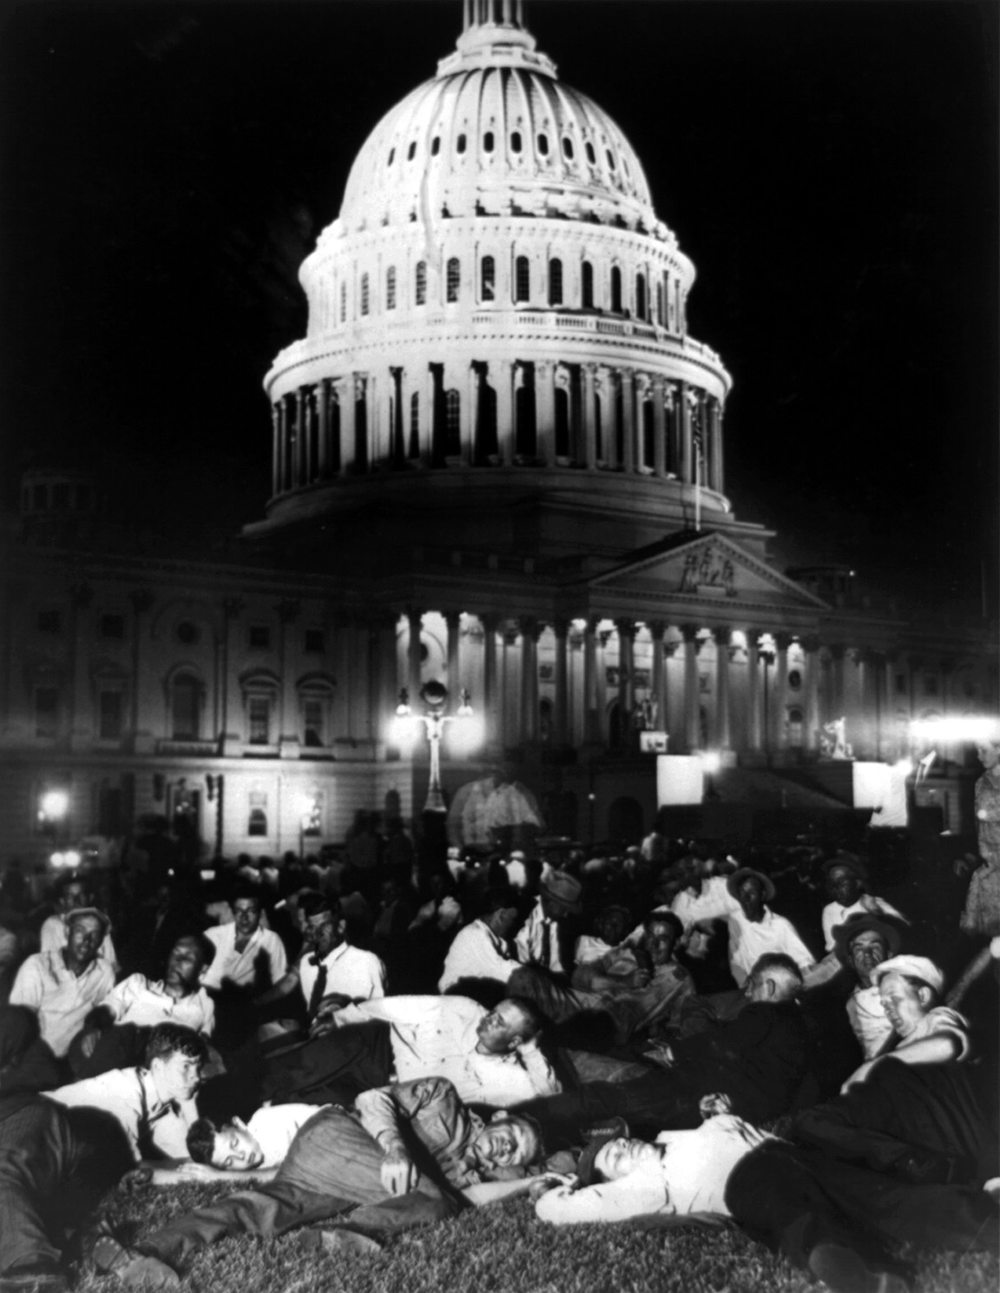 Members of the Bonus Army on the Capitol lawn, July 13, 1932. Library of Congress, Prints and Photographs Division, Washington, DC.